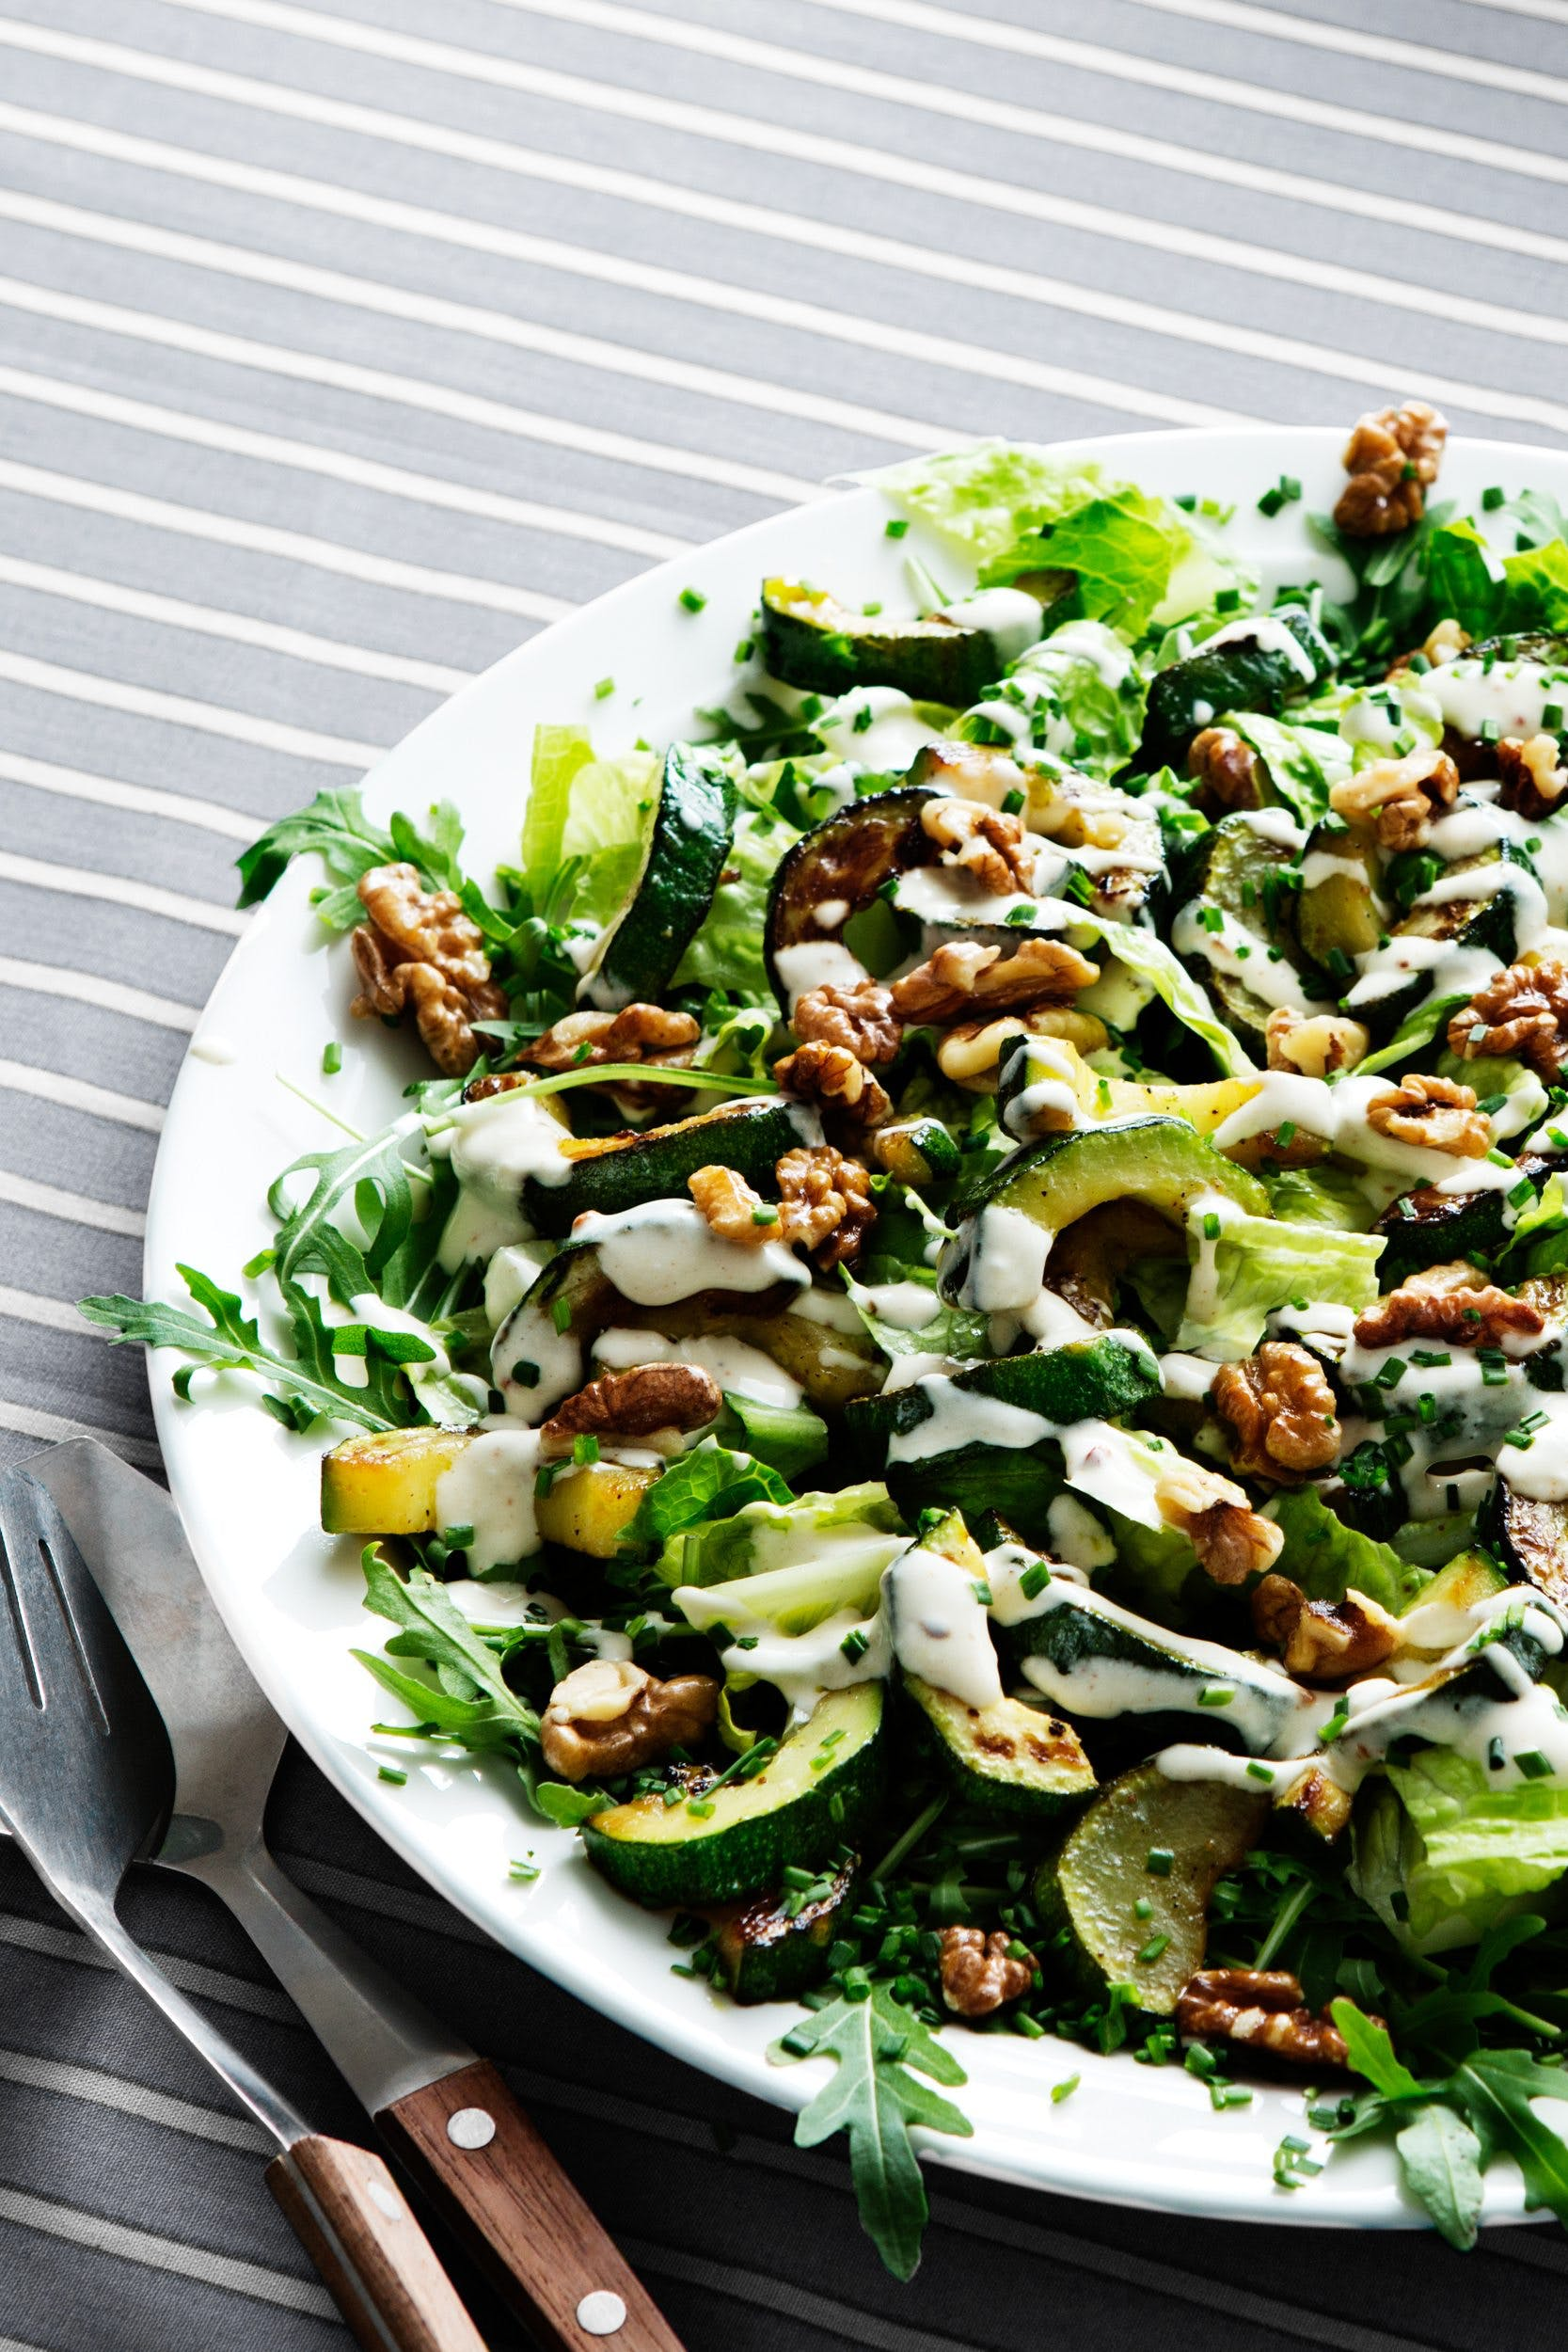 Low-carb zucchini and walnut salad